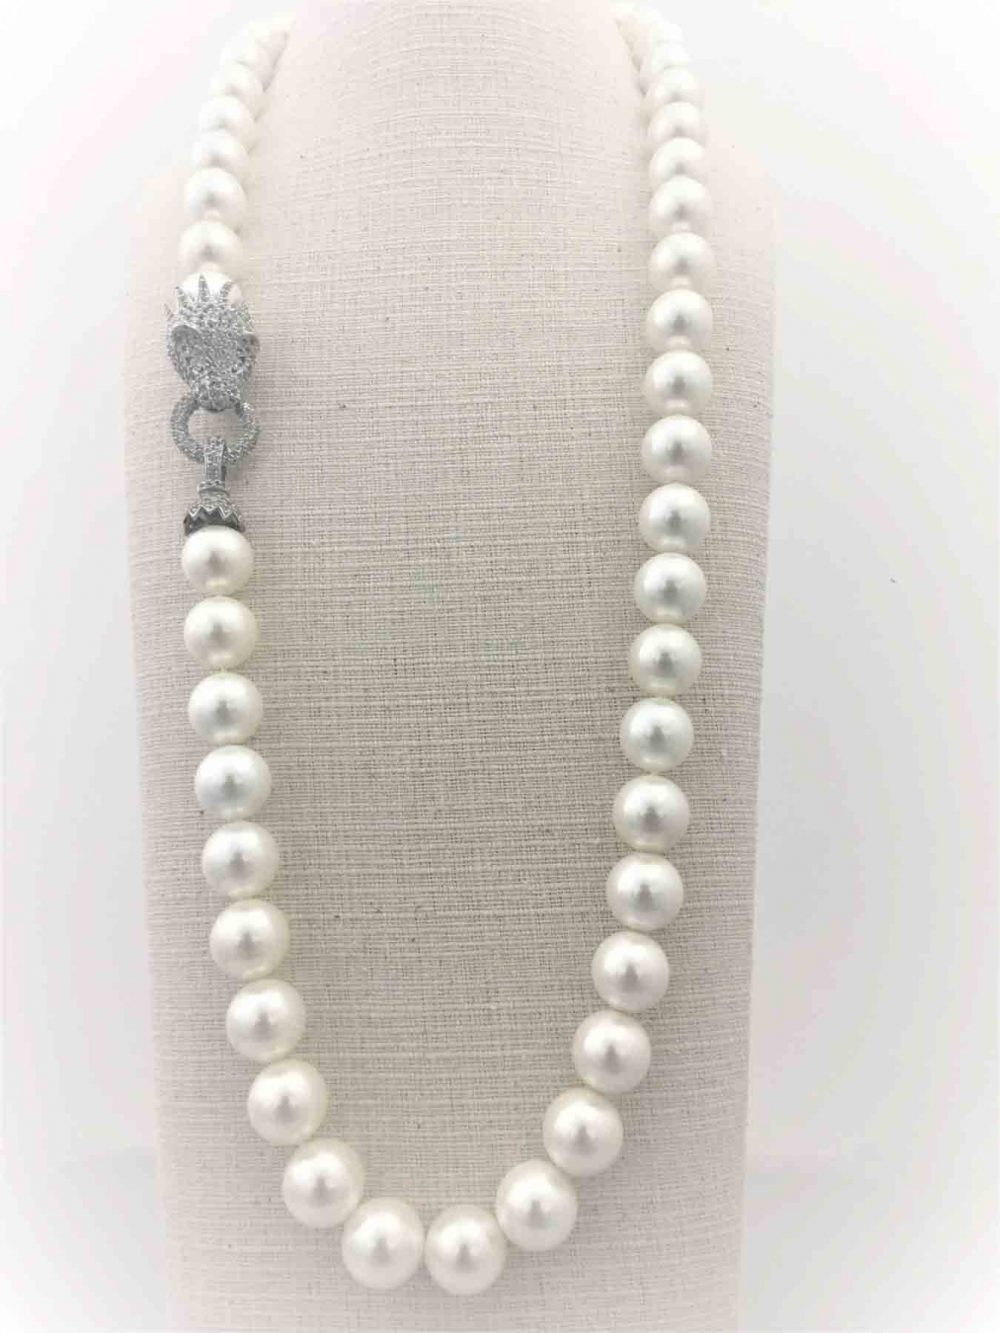 16mm Mother of Pearl Necklace with a large White Topaz encrusted Lion Head made of STG Silver (70cm)